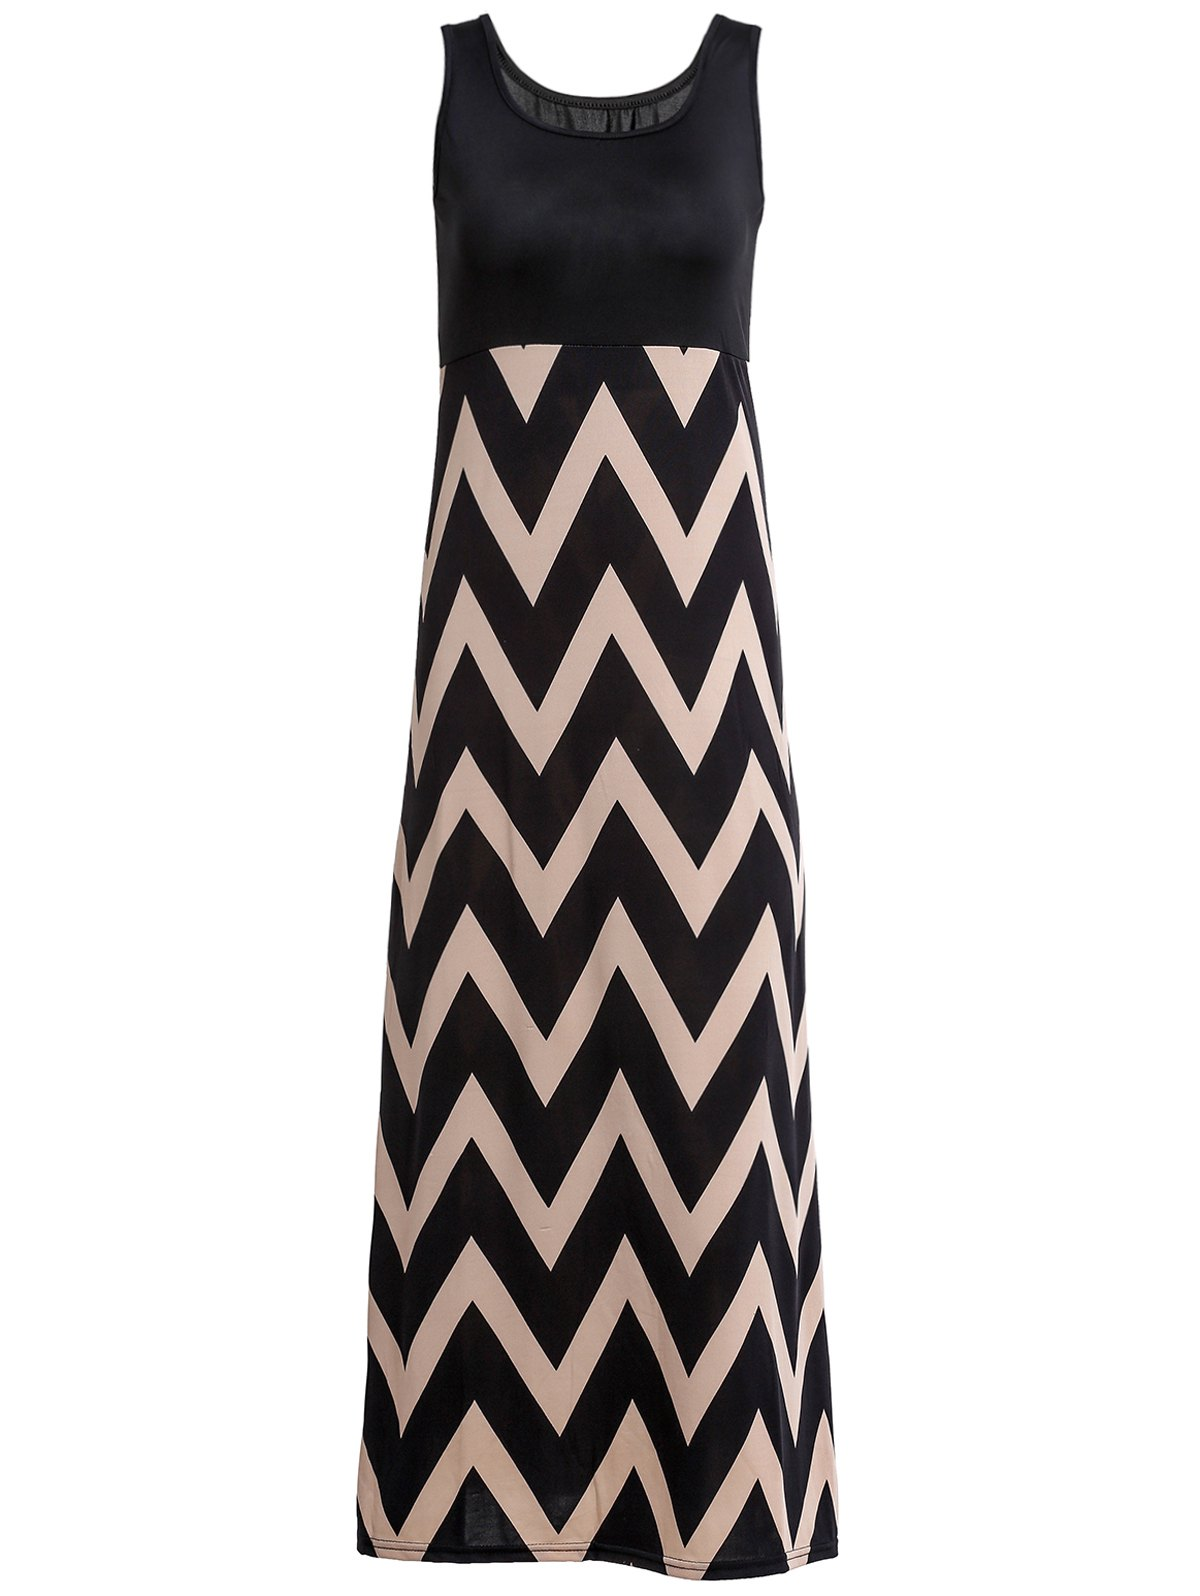 Stylish Women's Scoop Neck Sleeveless Zig Zag Maxi Dress - BLACK M